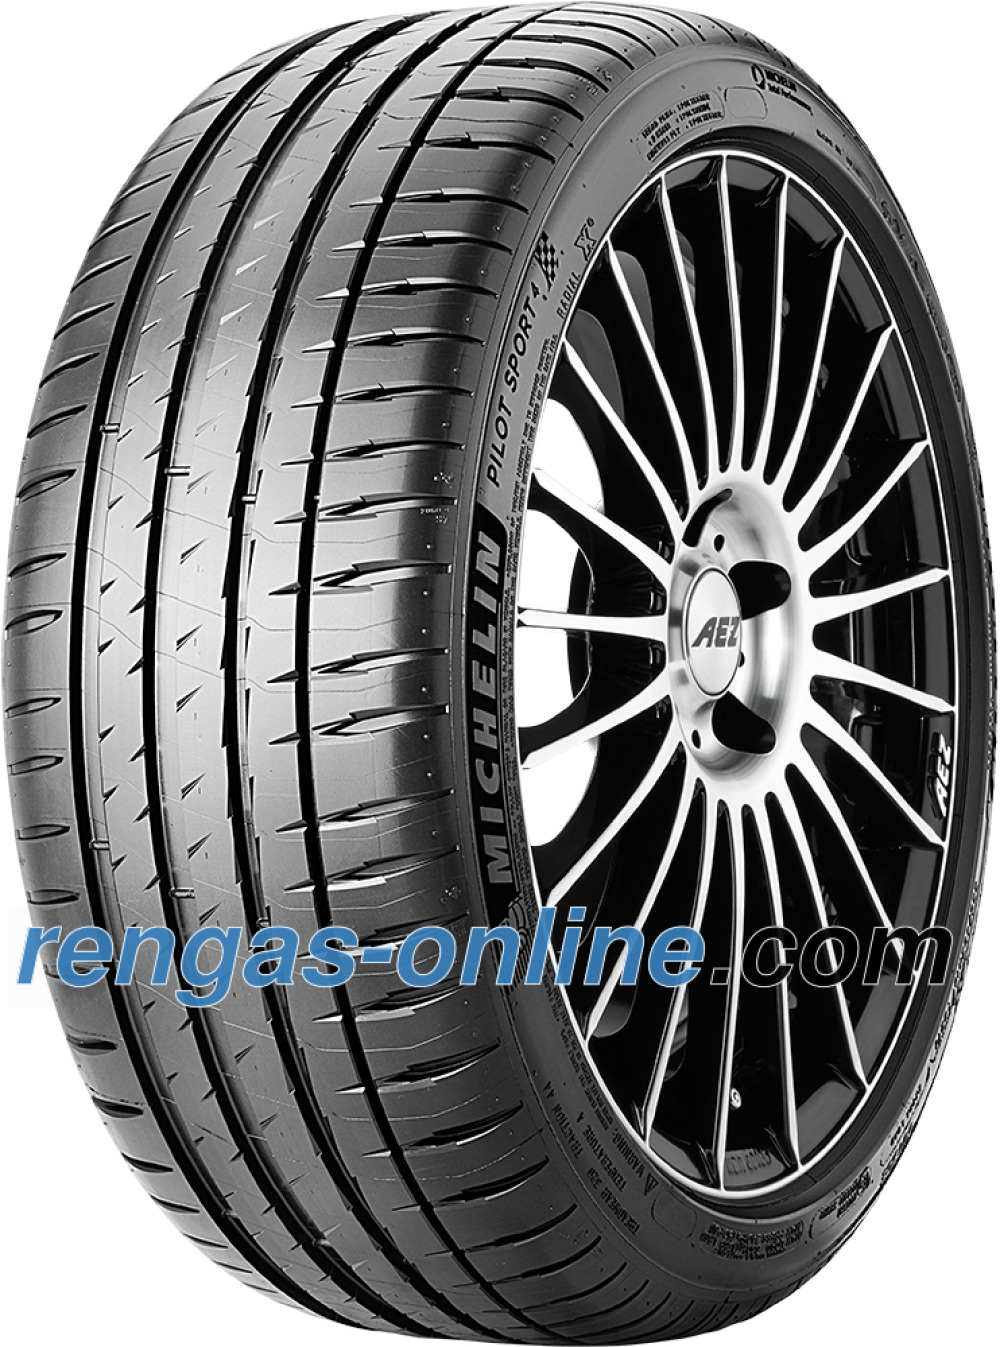 michelin-pilot-sport-4-27540-zr20-106y-xl-n0-acoustic